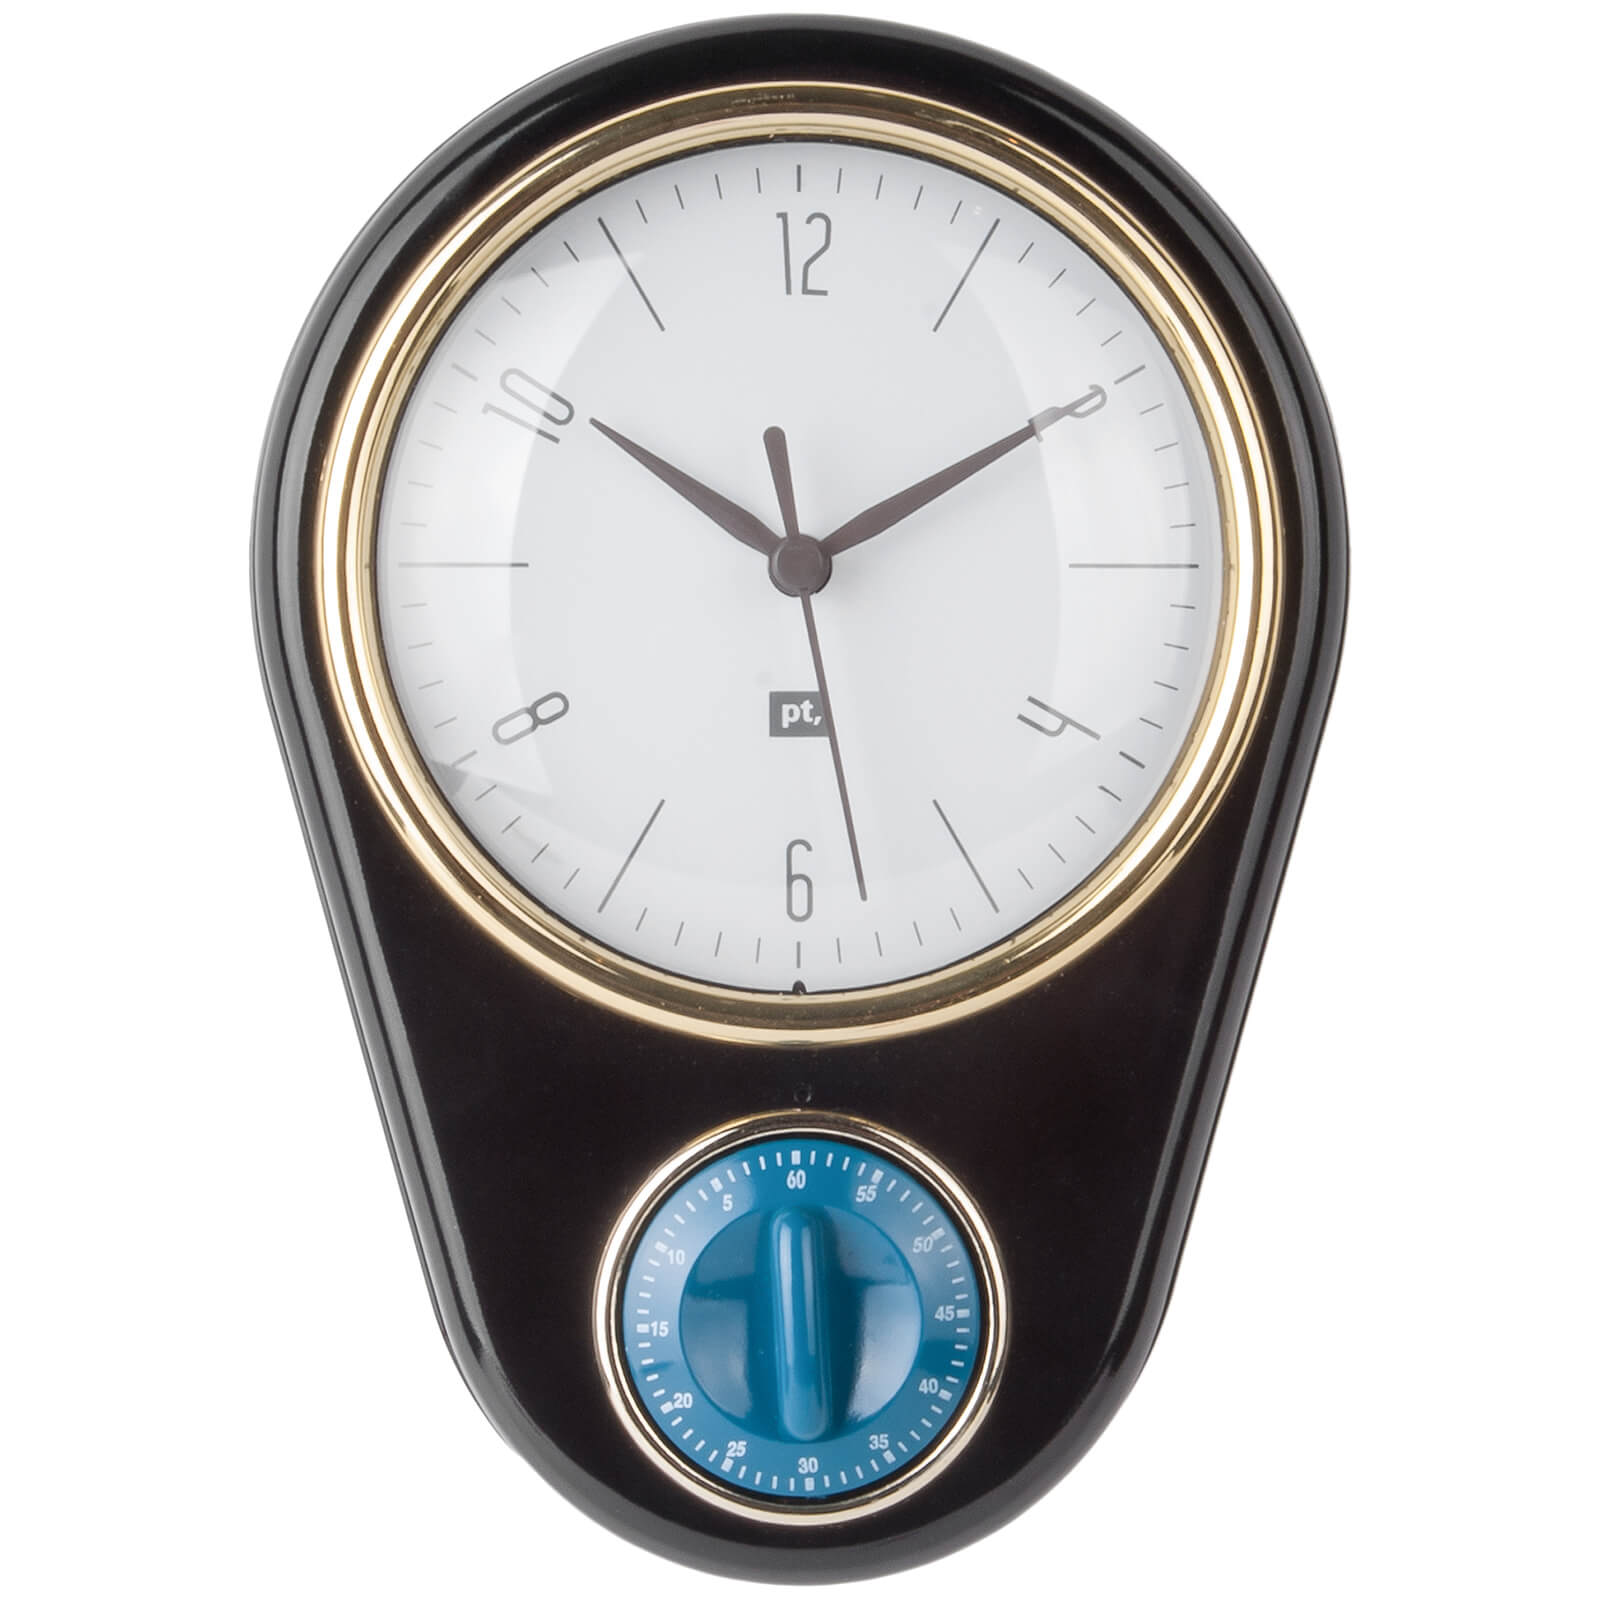 Present Time Retro Wall Clock with Kitchen Timer - Black